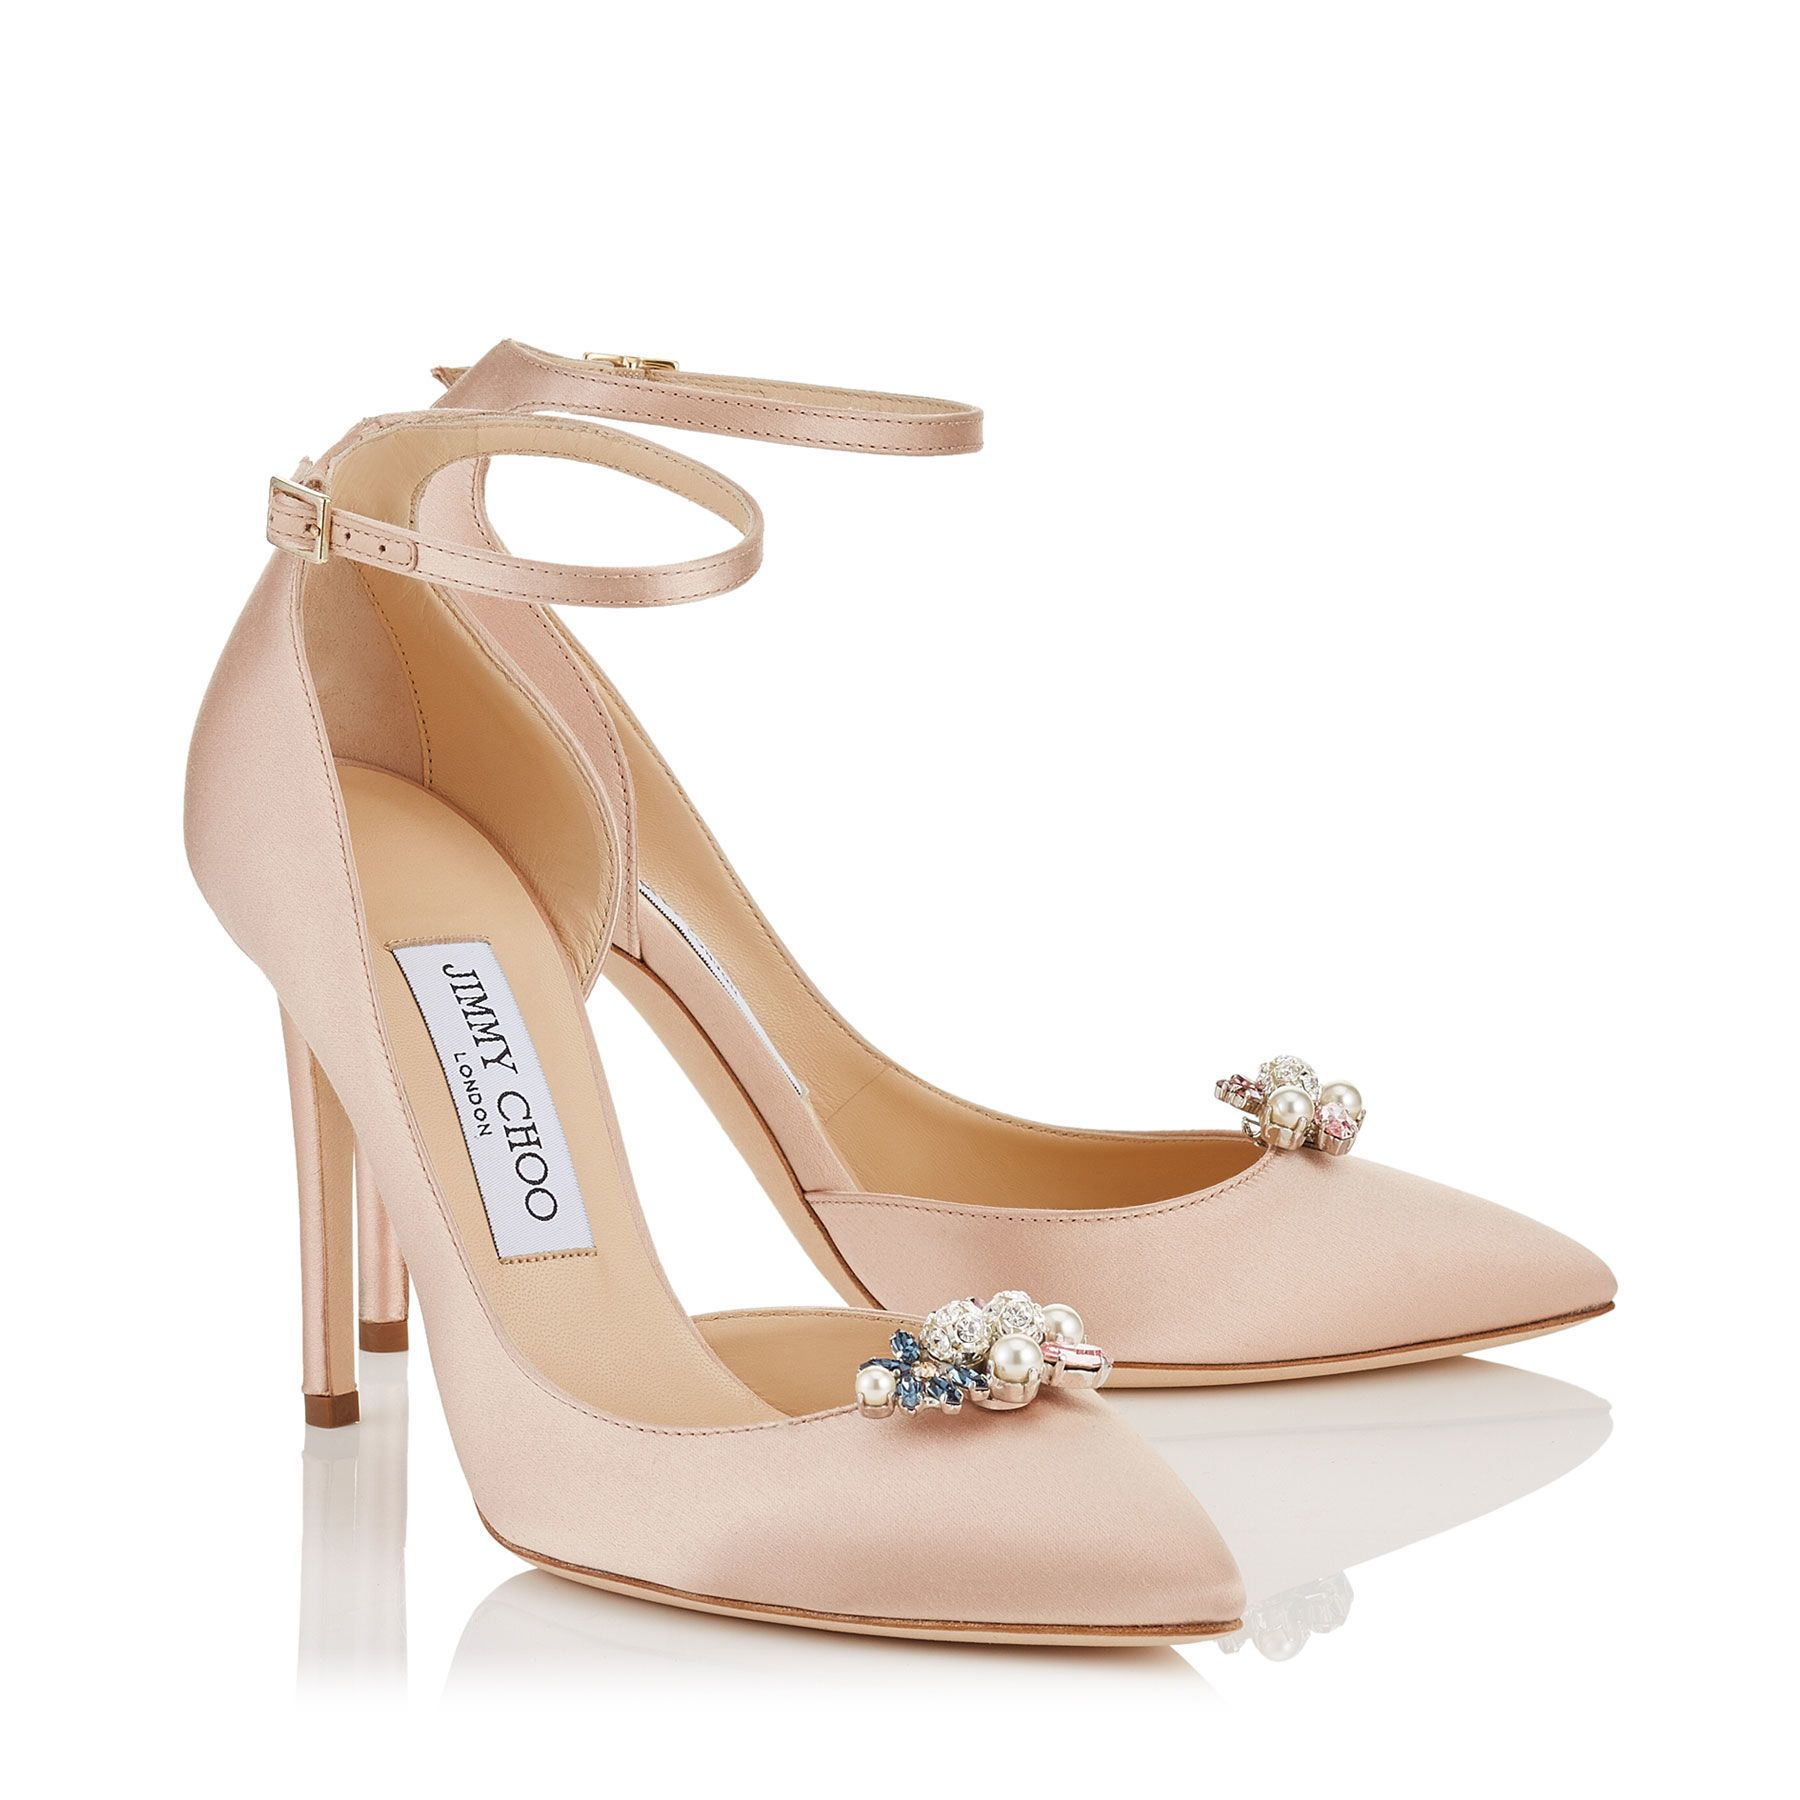 Dusty Rose Satin Pointy Toe Pumps with Crystal Mix Clip On Jewels | Rosa 100  |